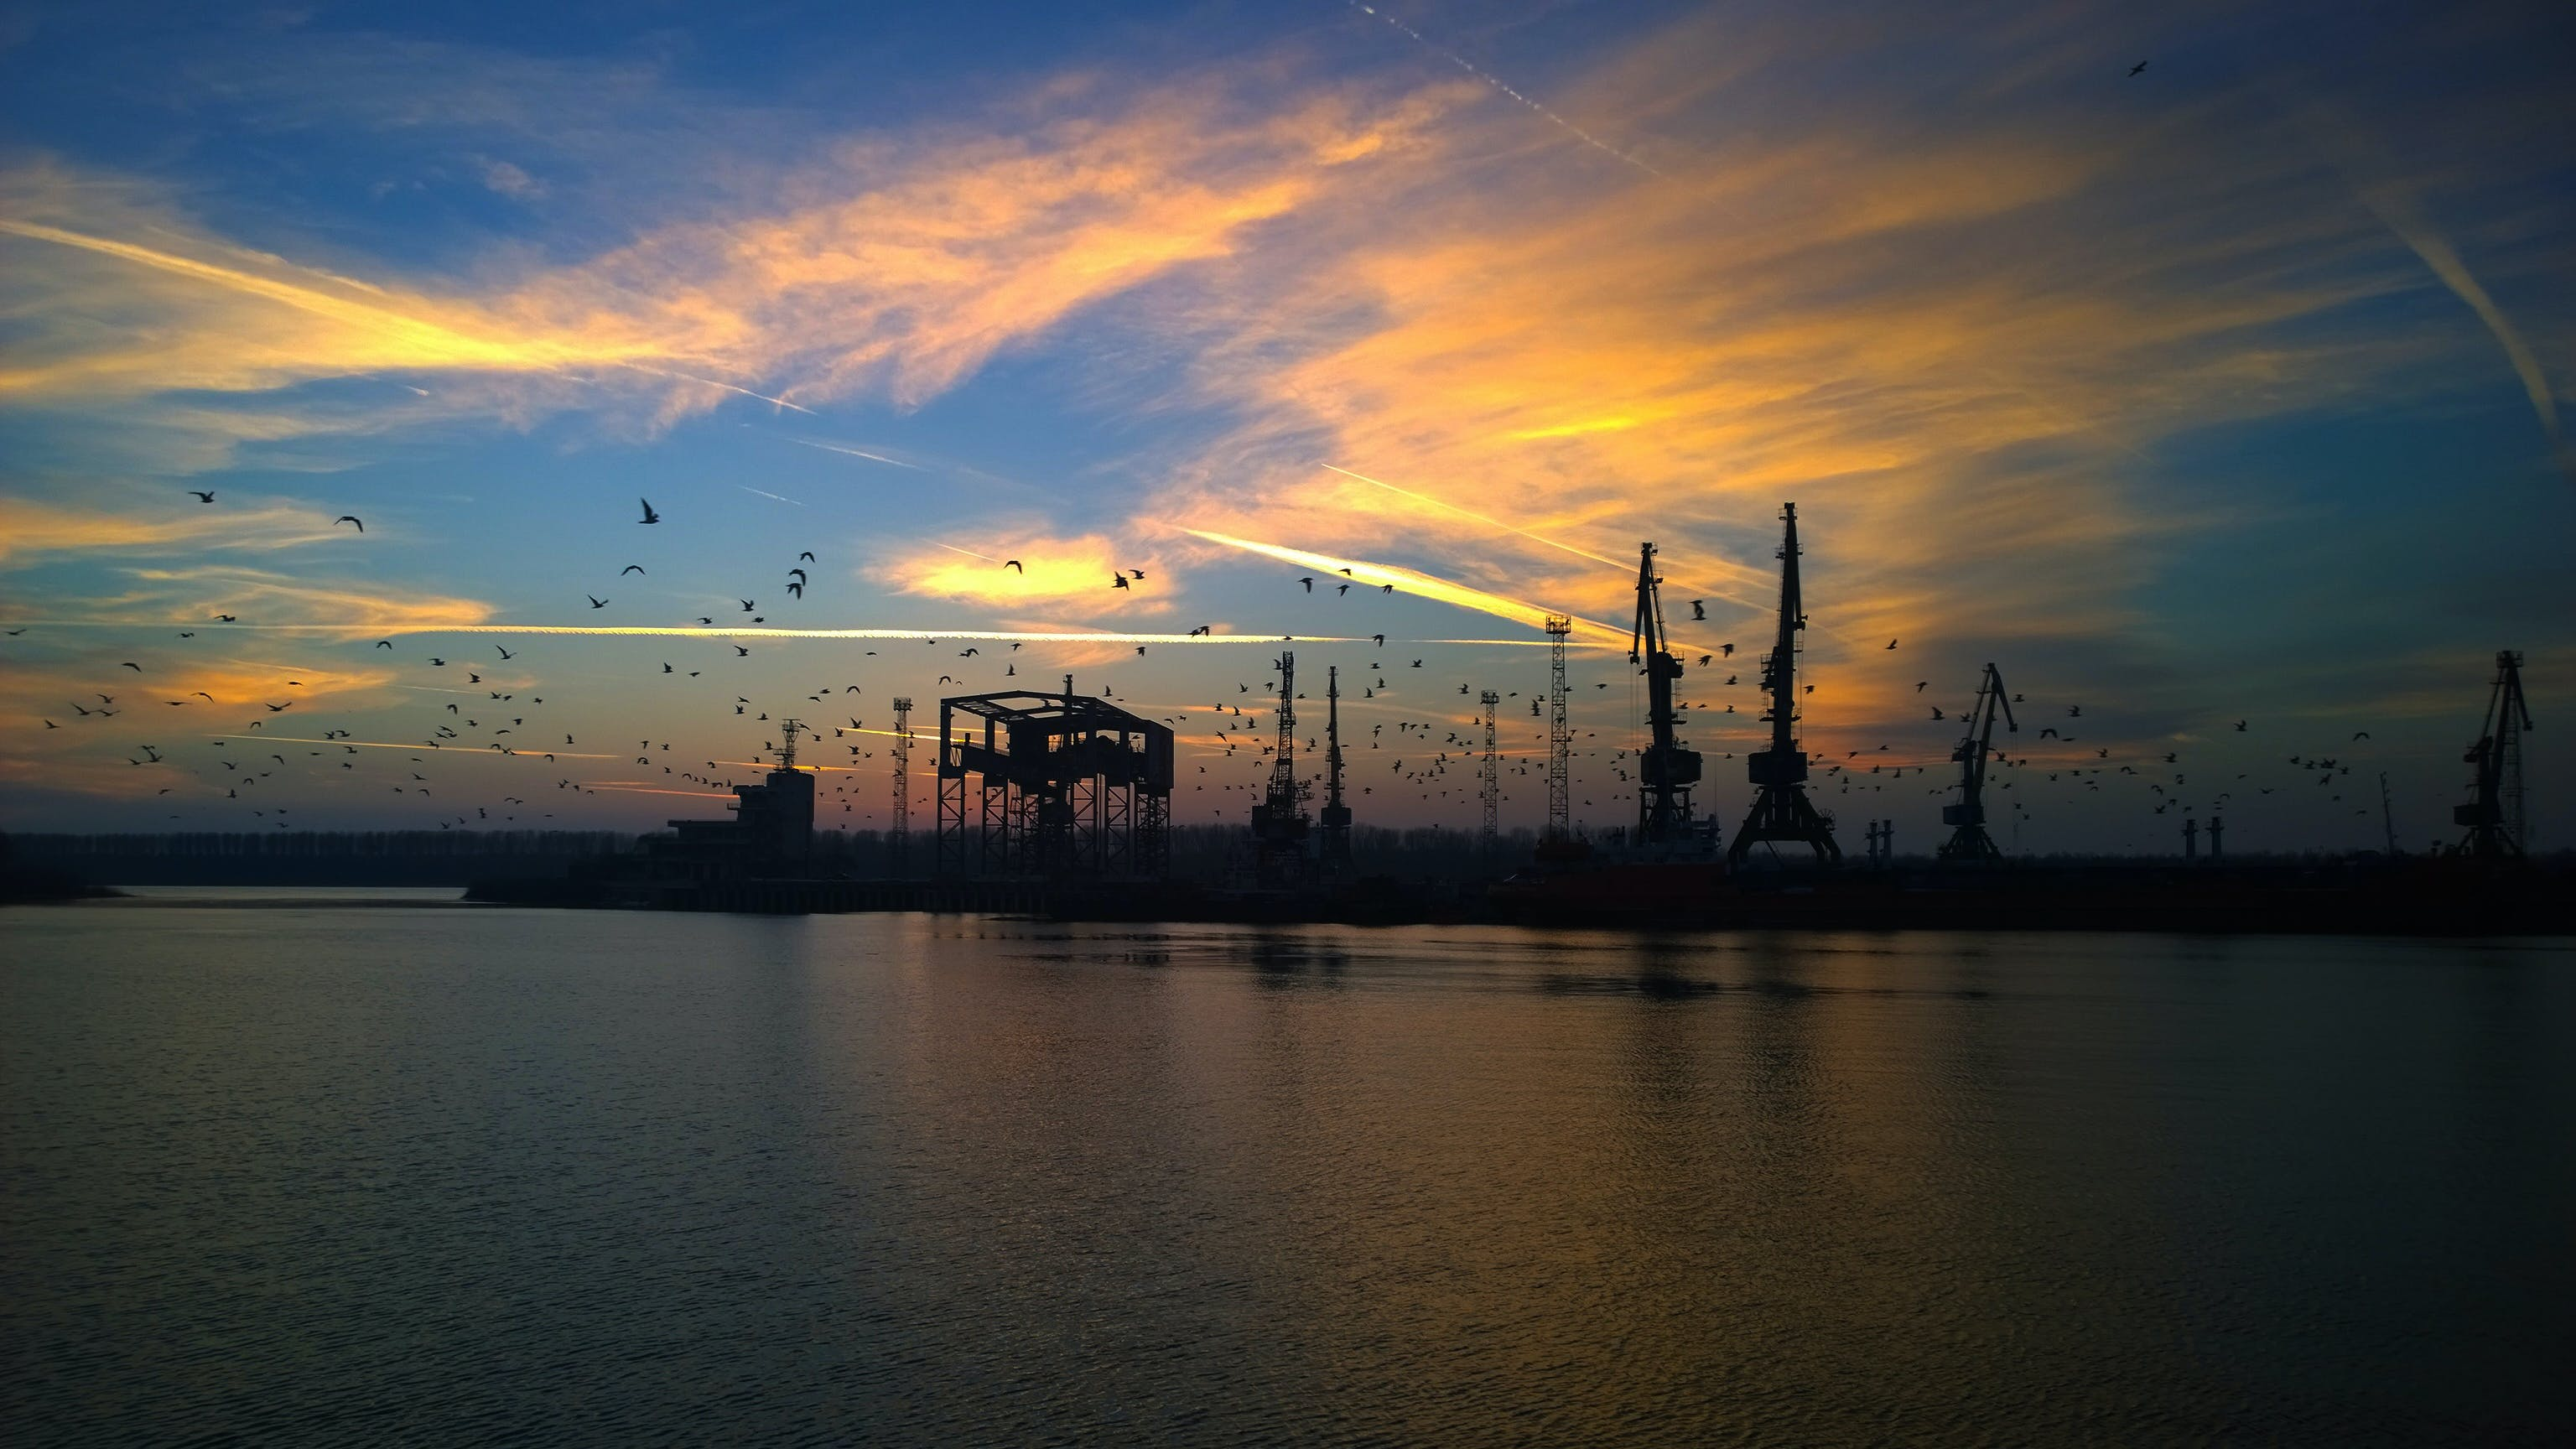 Free stock photo of backwater, birds, clouds, crane